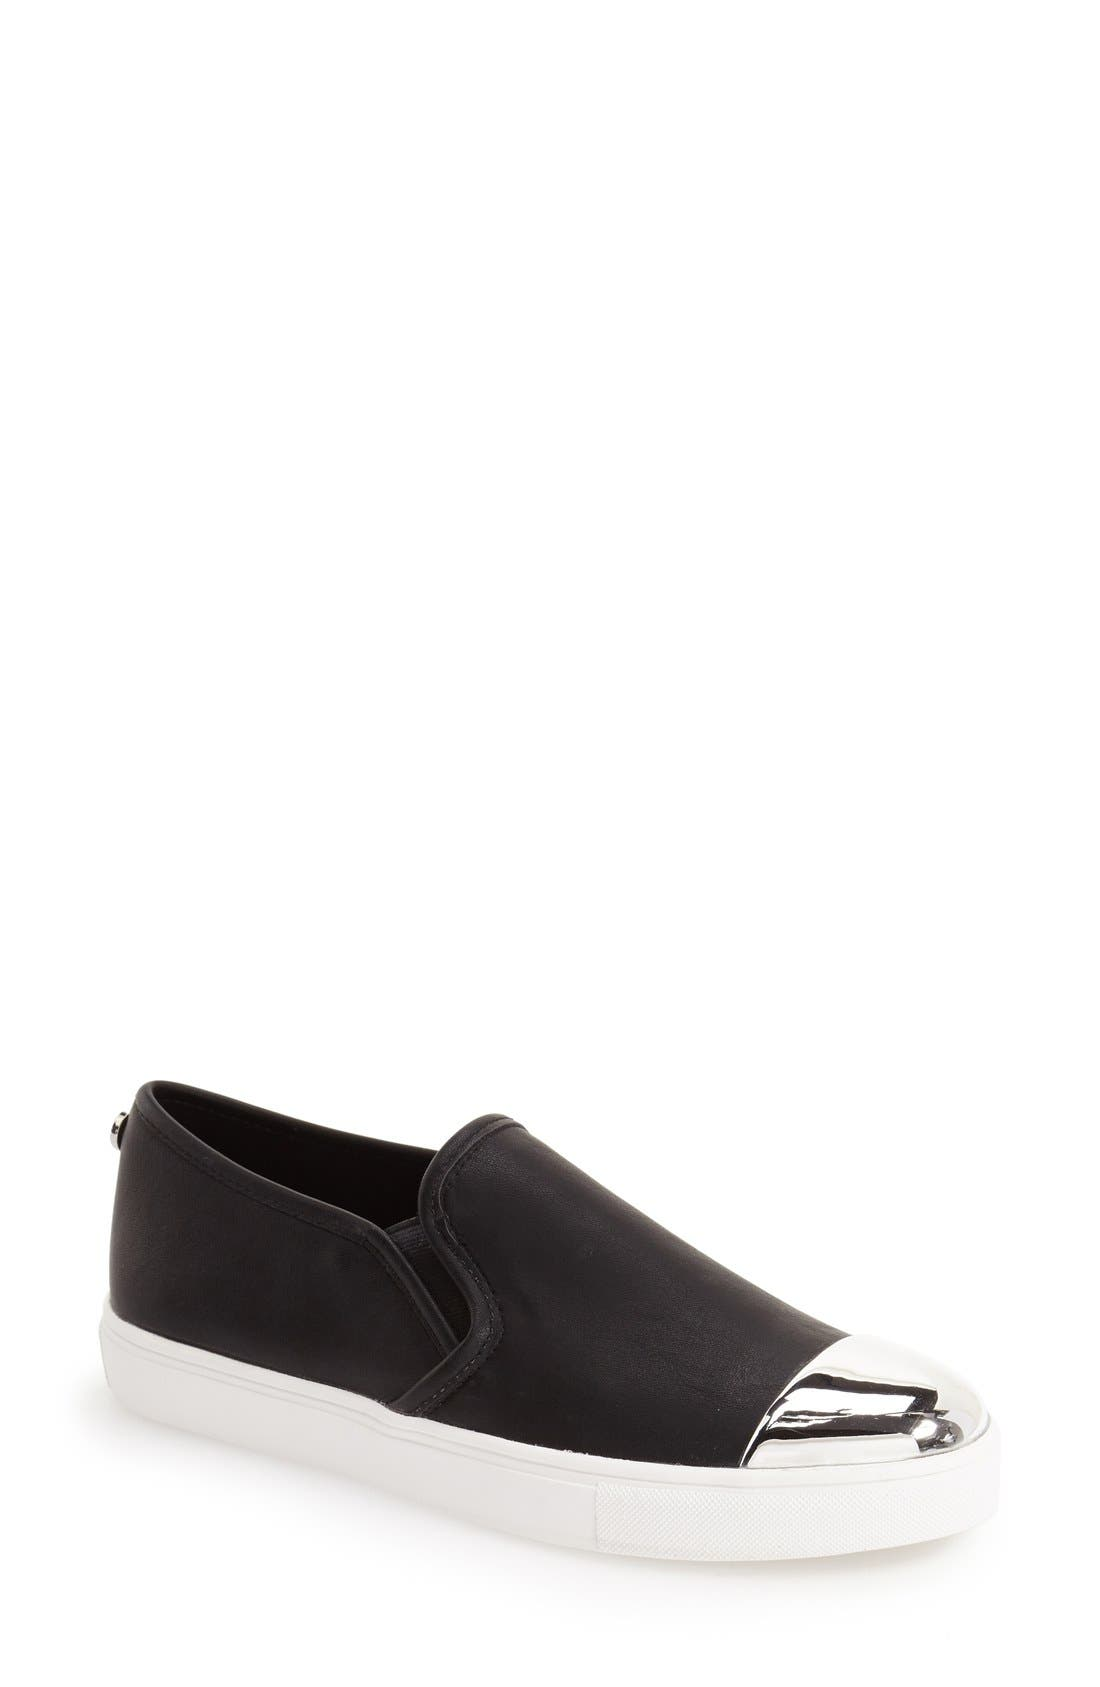 Alternate Image 1 Selected - Steve Madden 'Eleete' Slip On Sneaker (Women)